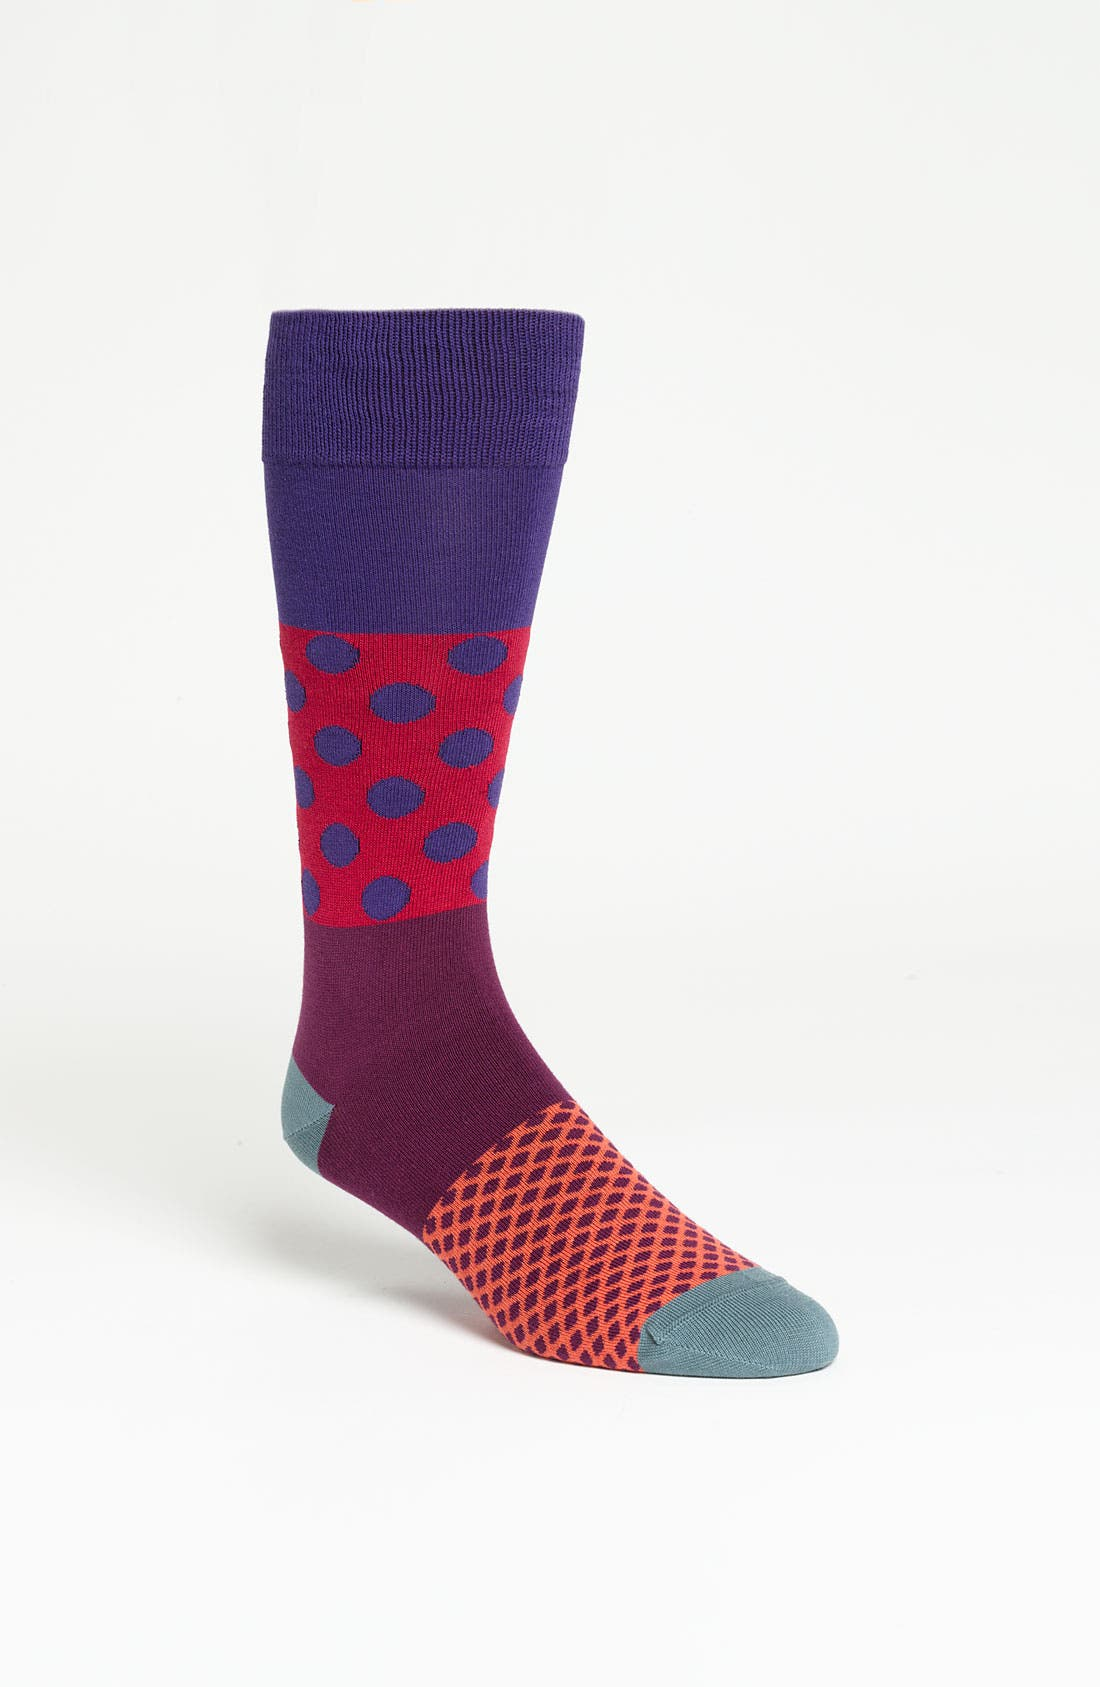 Main Image - Paul Smith Accessories Patterned Socks